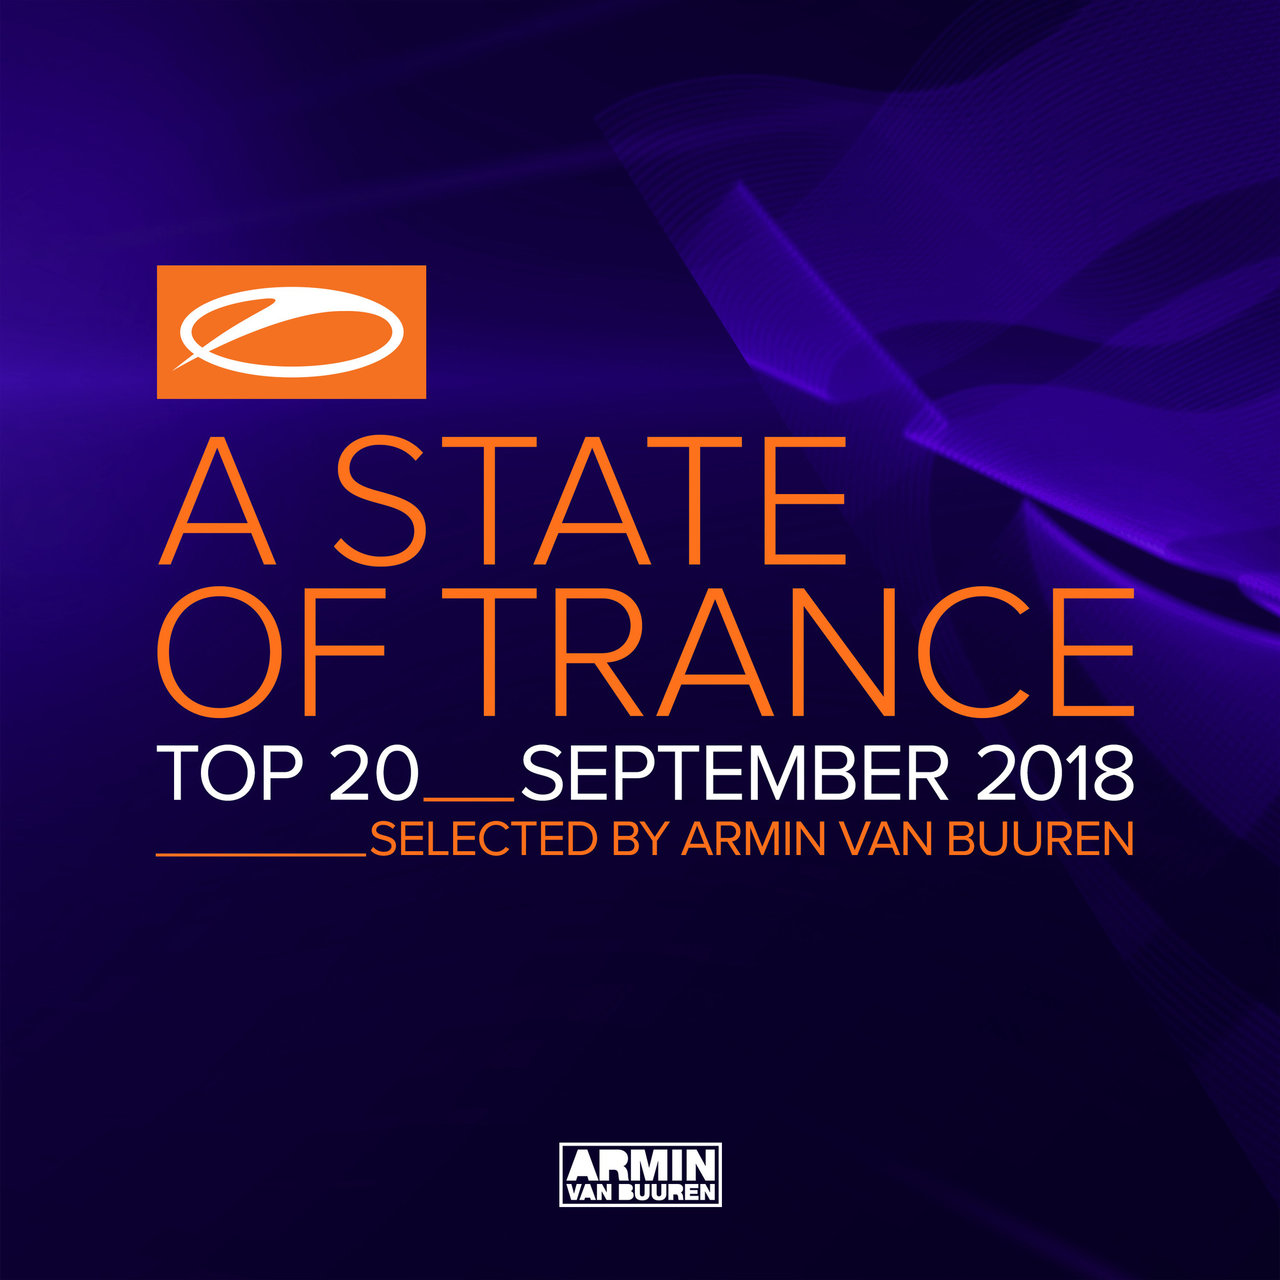 A State Of Trance Top 20 - September 2018 (Selected by Armin van Buuren)